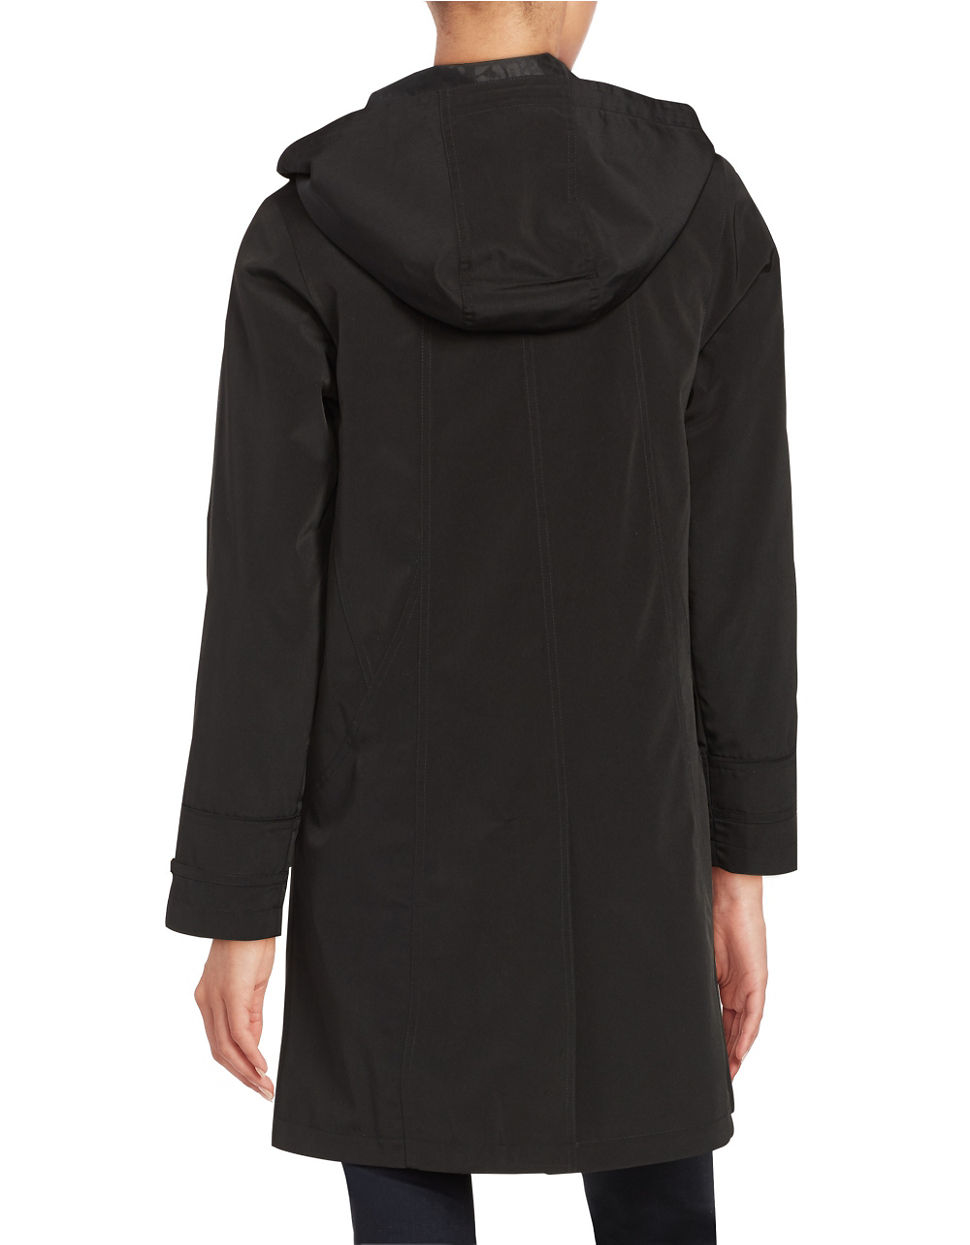 black trench coat with hood - photo #12